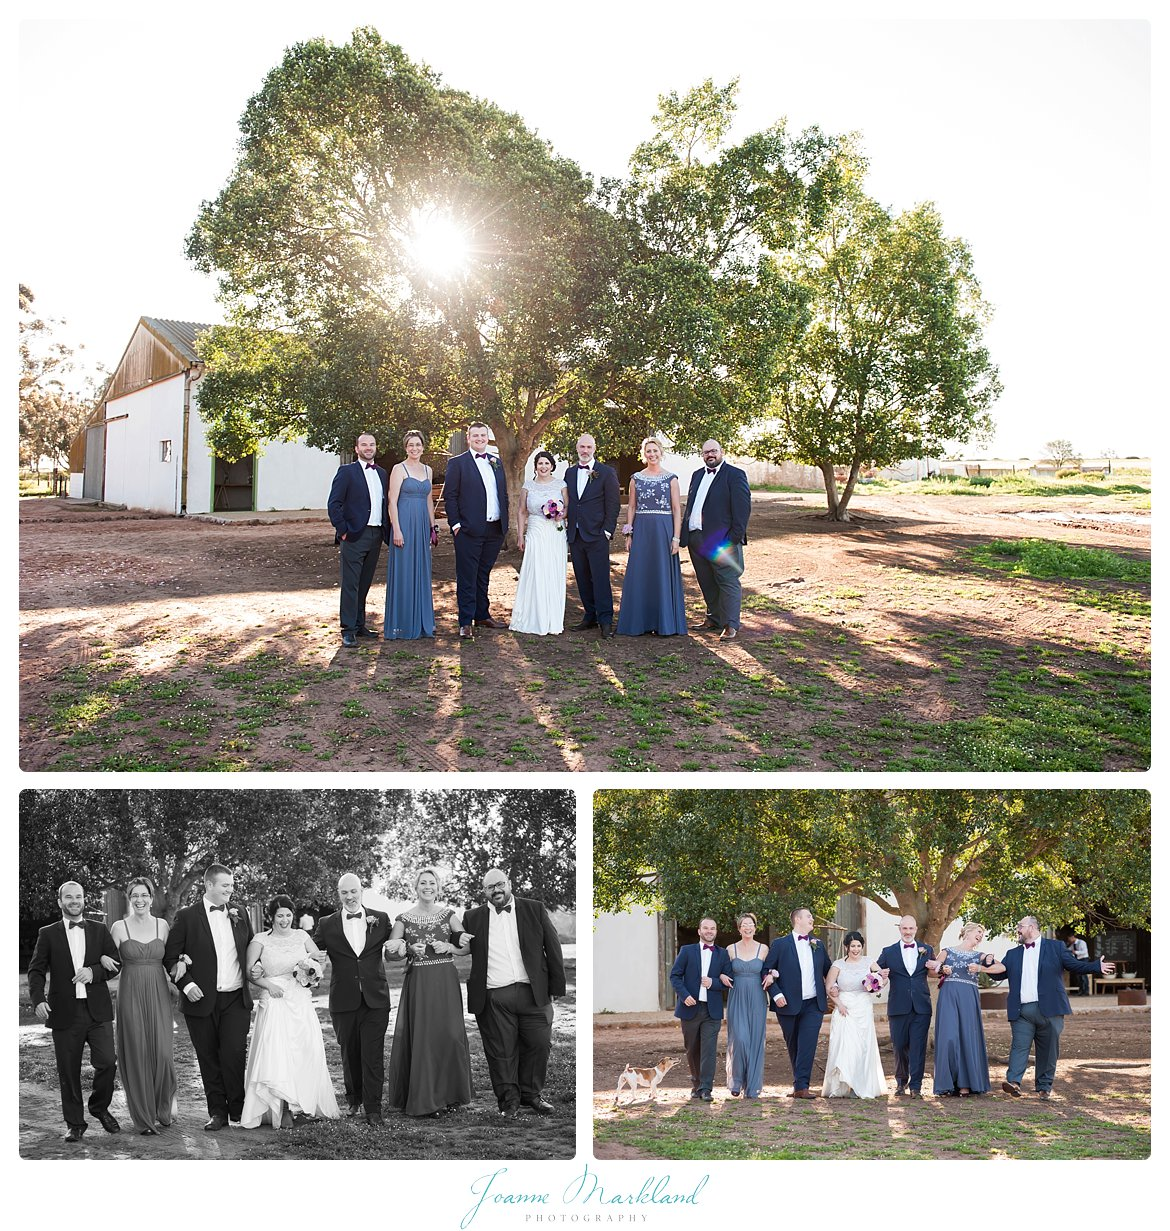 boorwater-wedding-hopefield-west-coast-cape-town-joanne-markland-photography-030